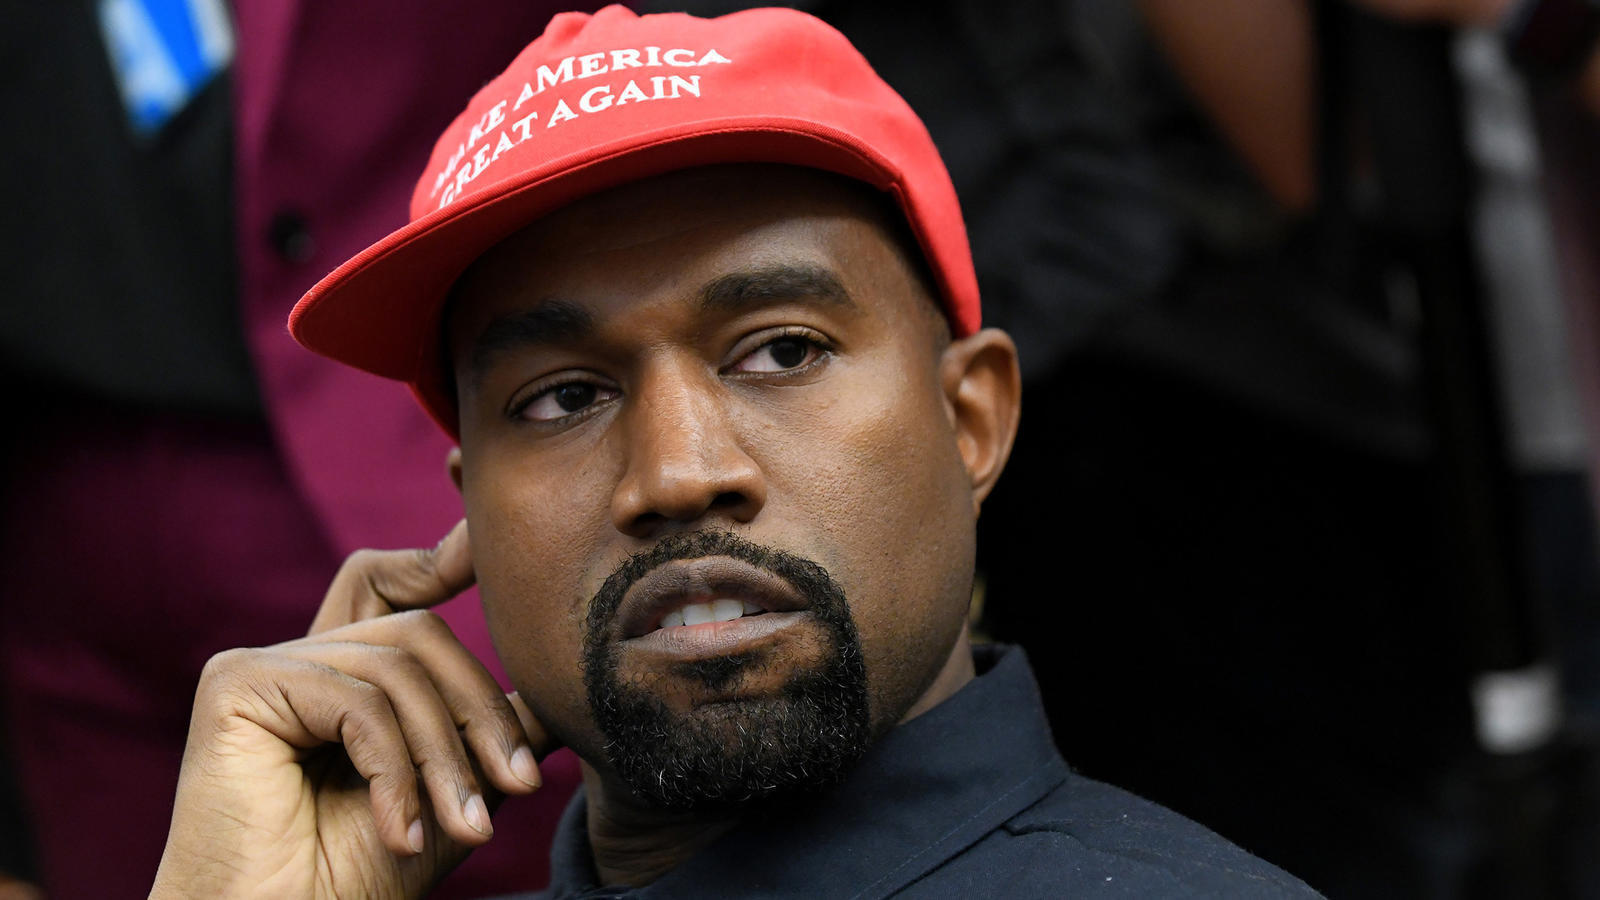 On the first day of 2019, Kanye West's Trump tweets were ... Kanye West